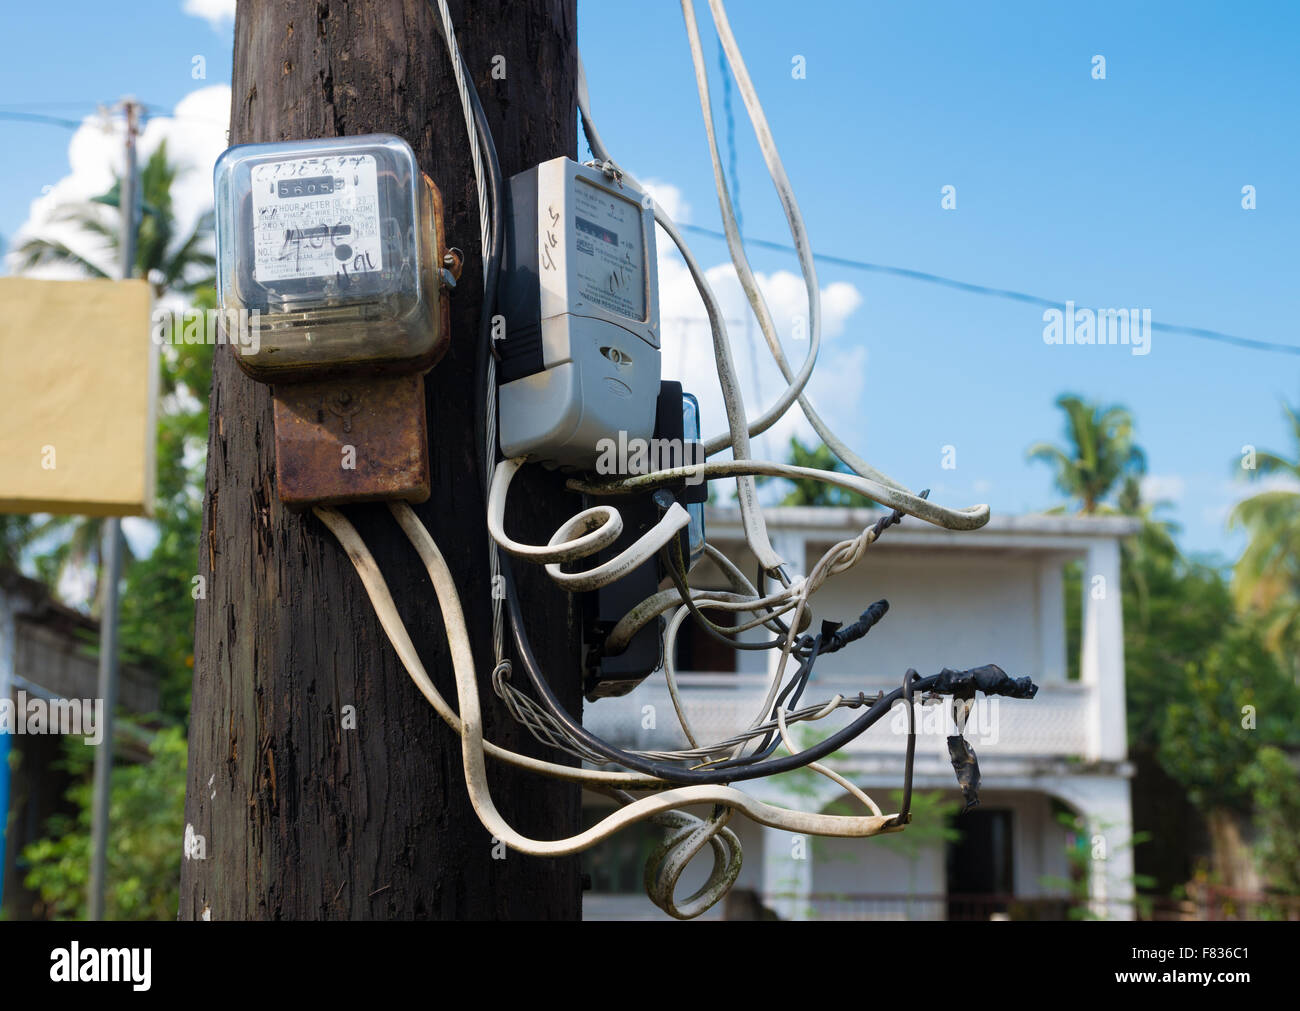 SIPOCOT, PHILIPPINES - MAY 27, 2015: Outdoor power usage meter on a schoolyard of an elementary school - Stock Image